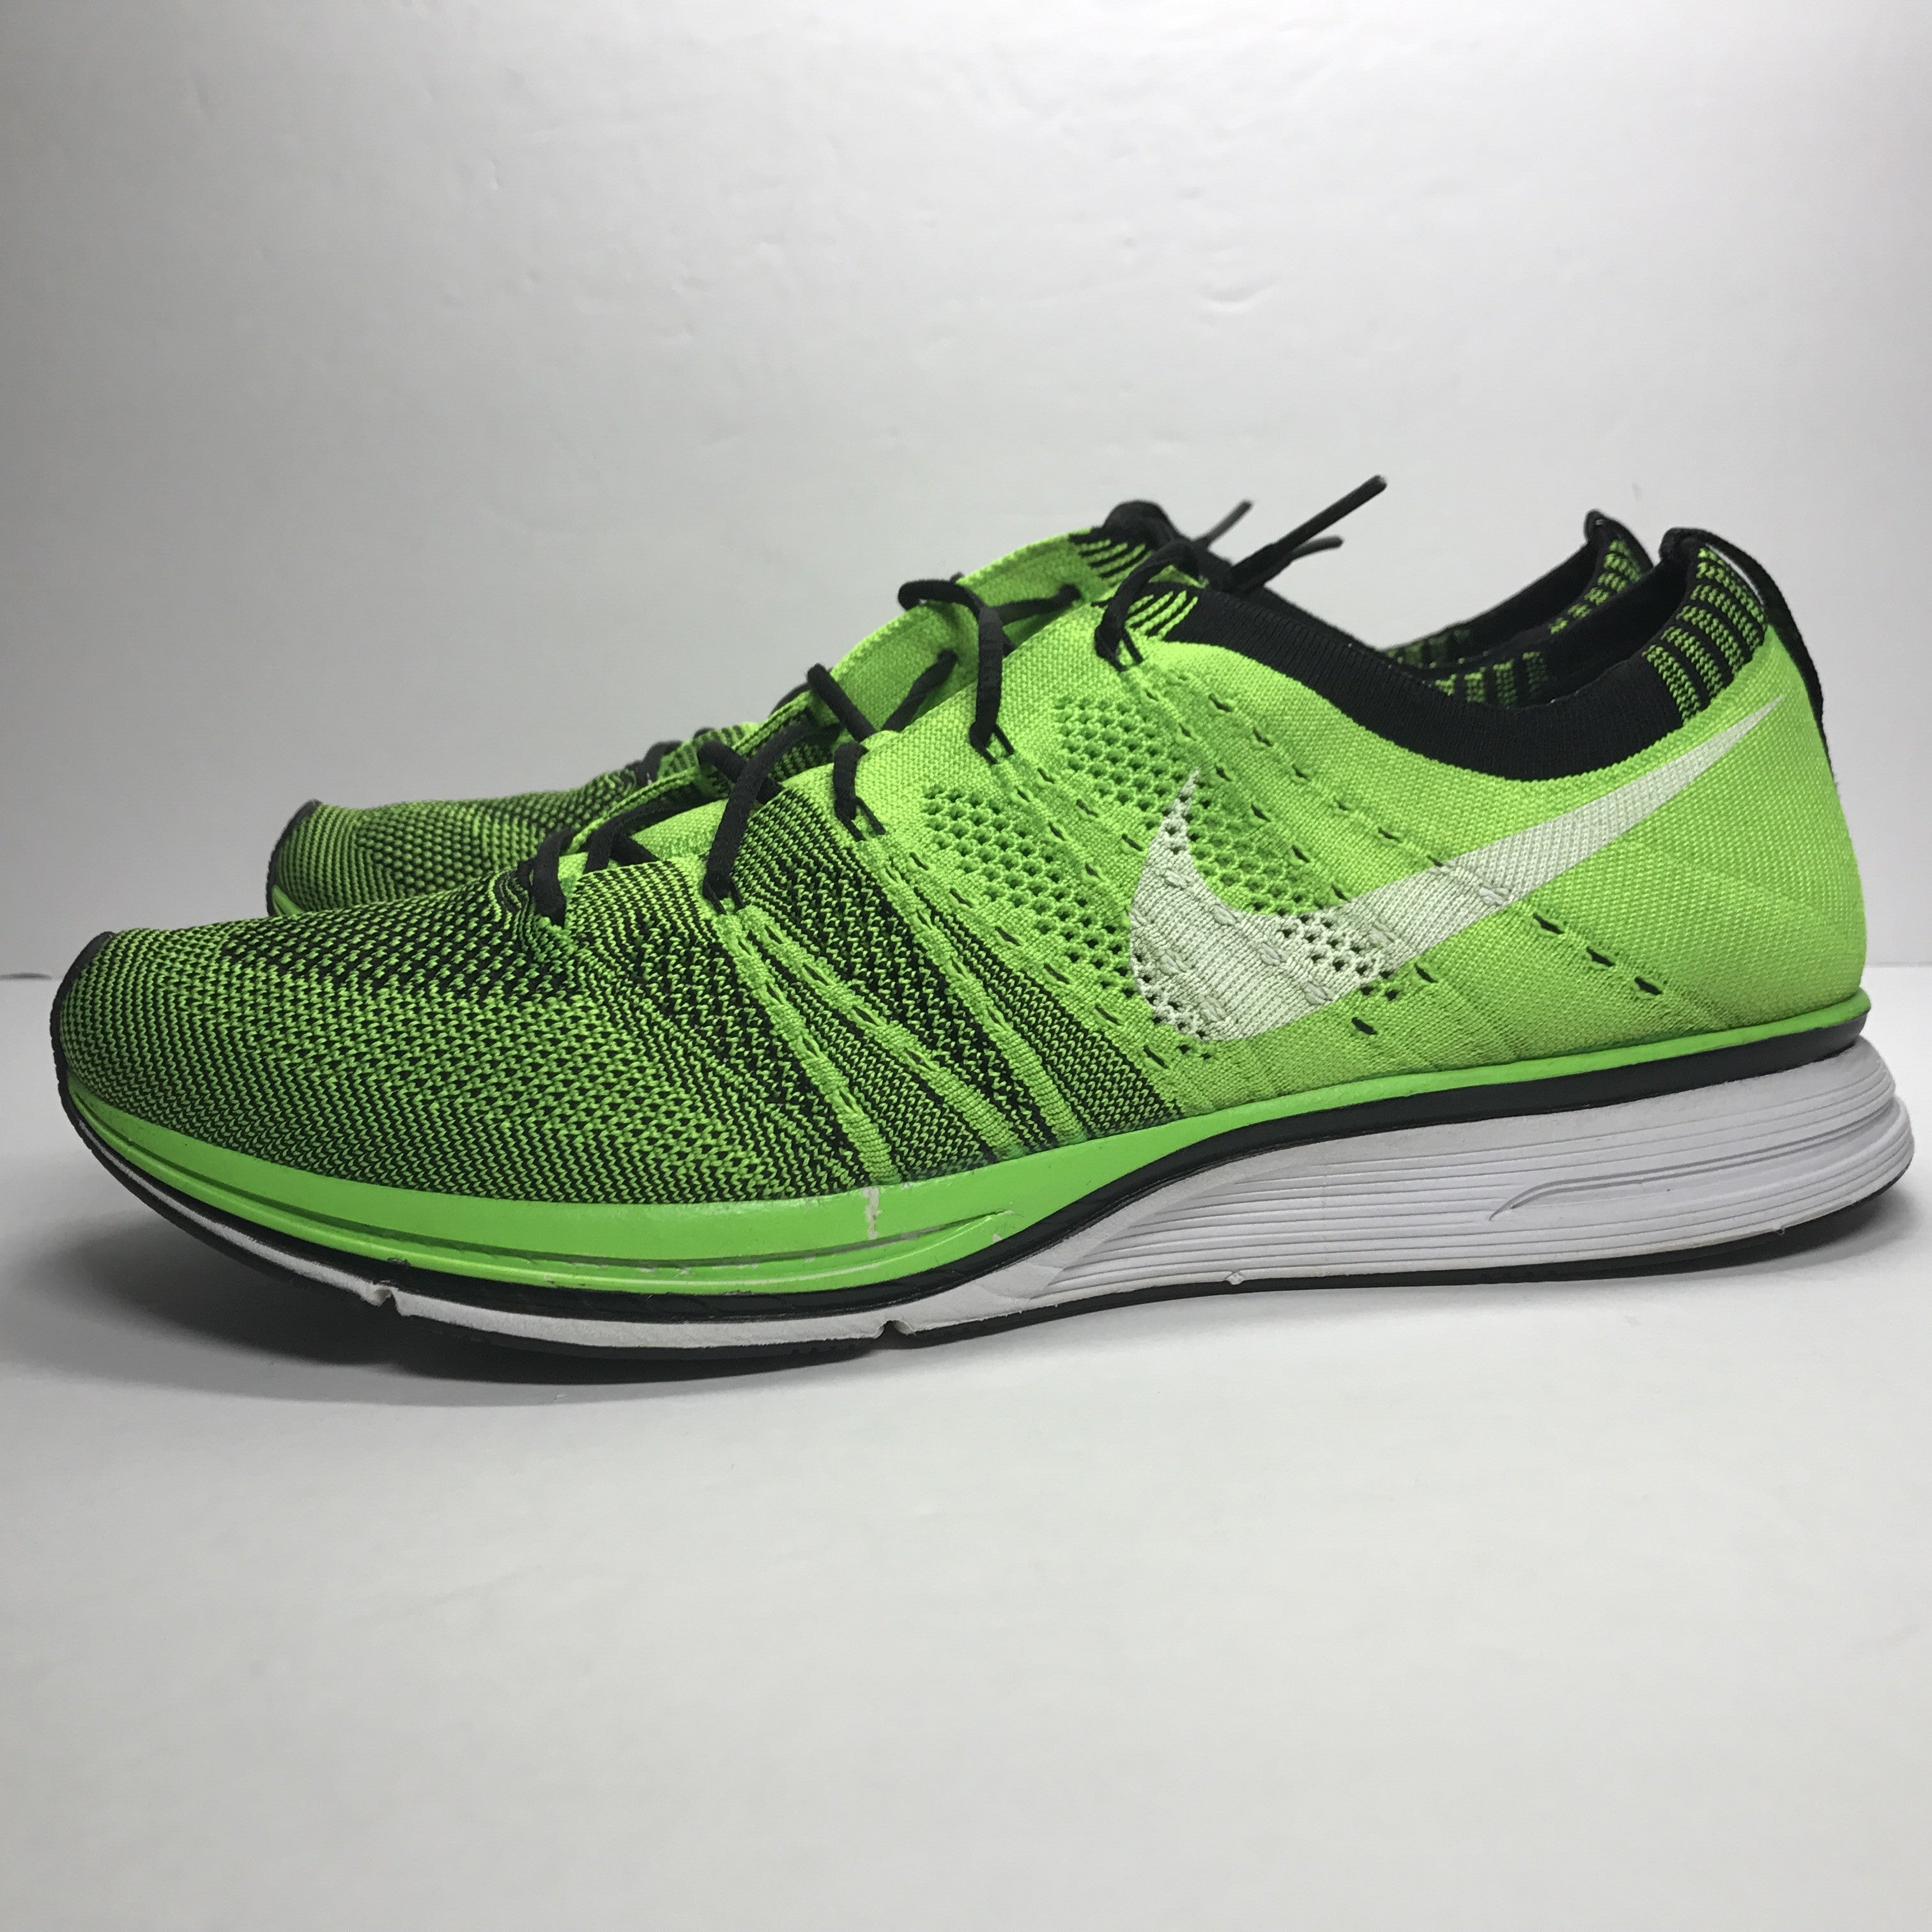 Nike Flyknit Trainer Electric Green Size 10.5